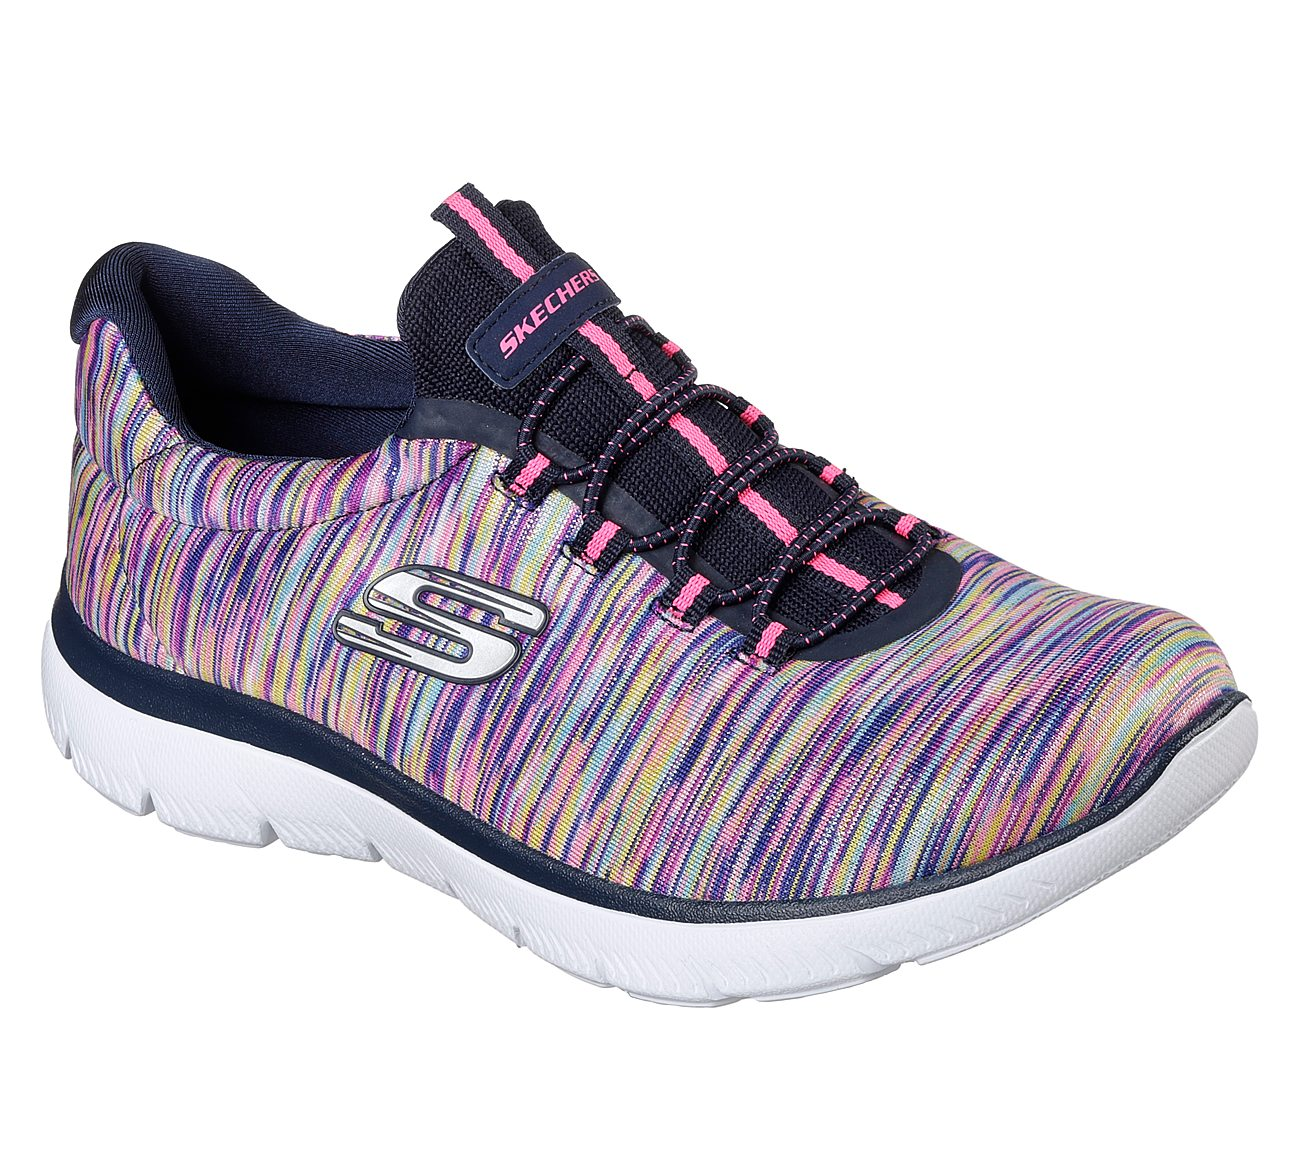 f7682aeca5 Buy SKECHERS Summits - Light Dreaming Sport Shoes only $55.00